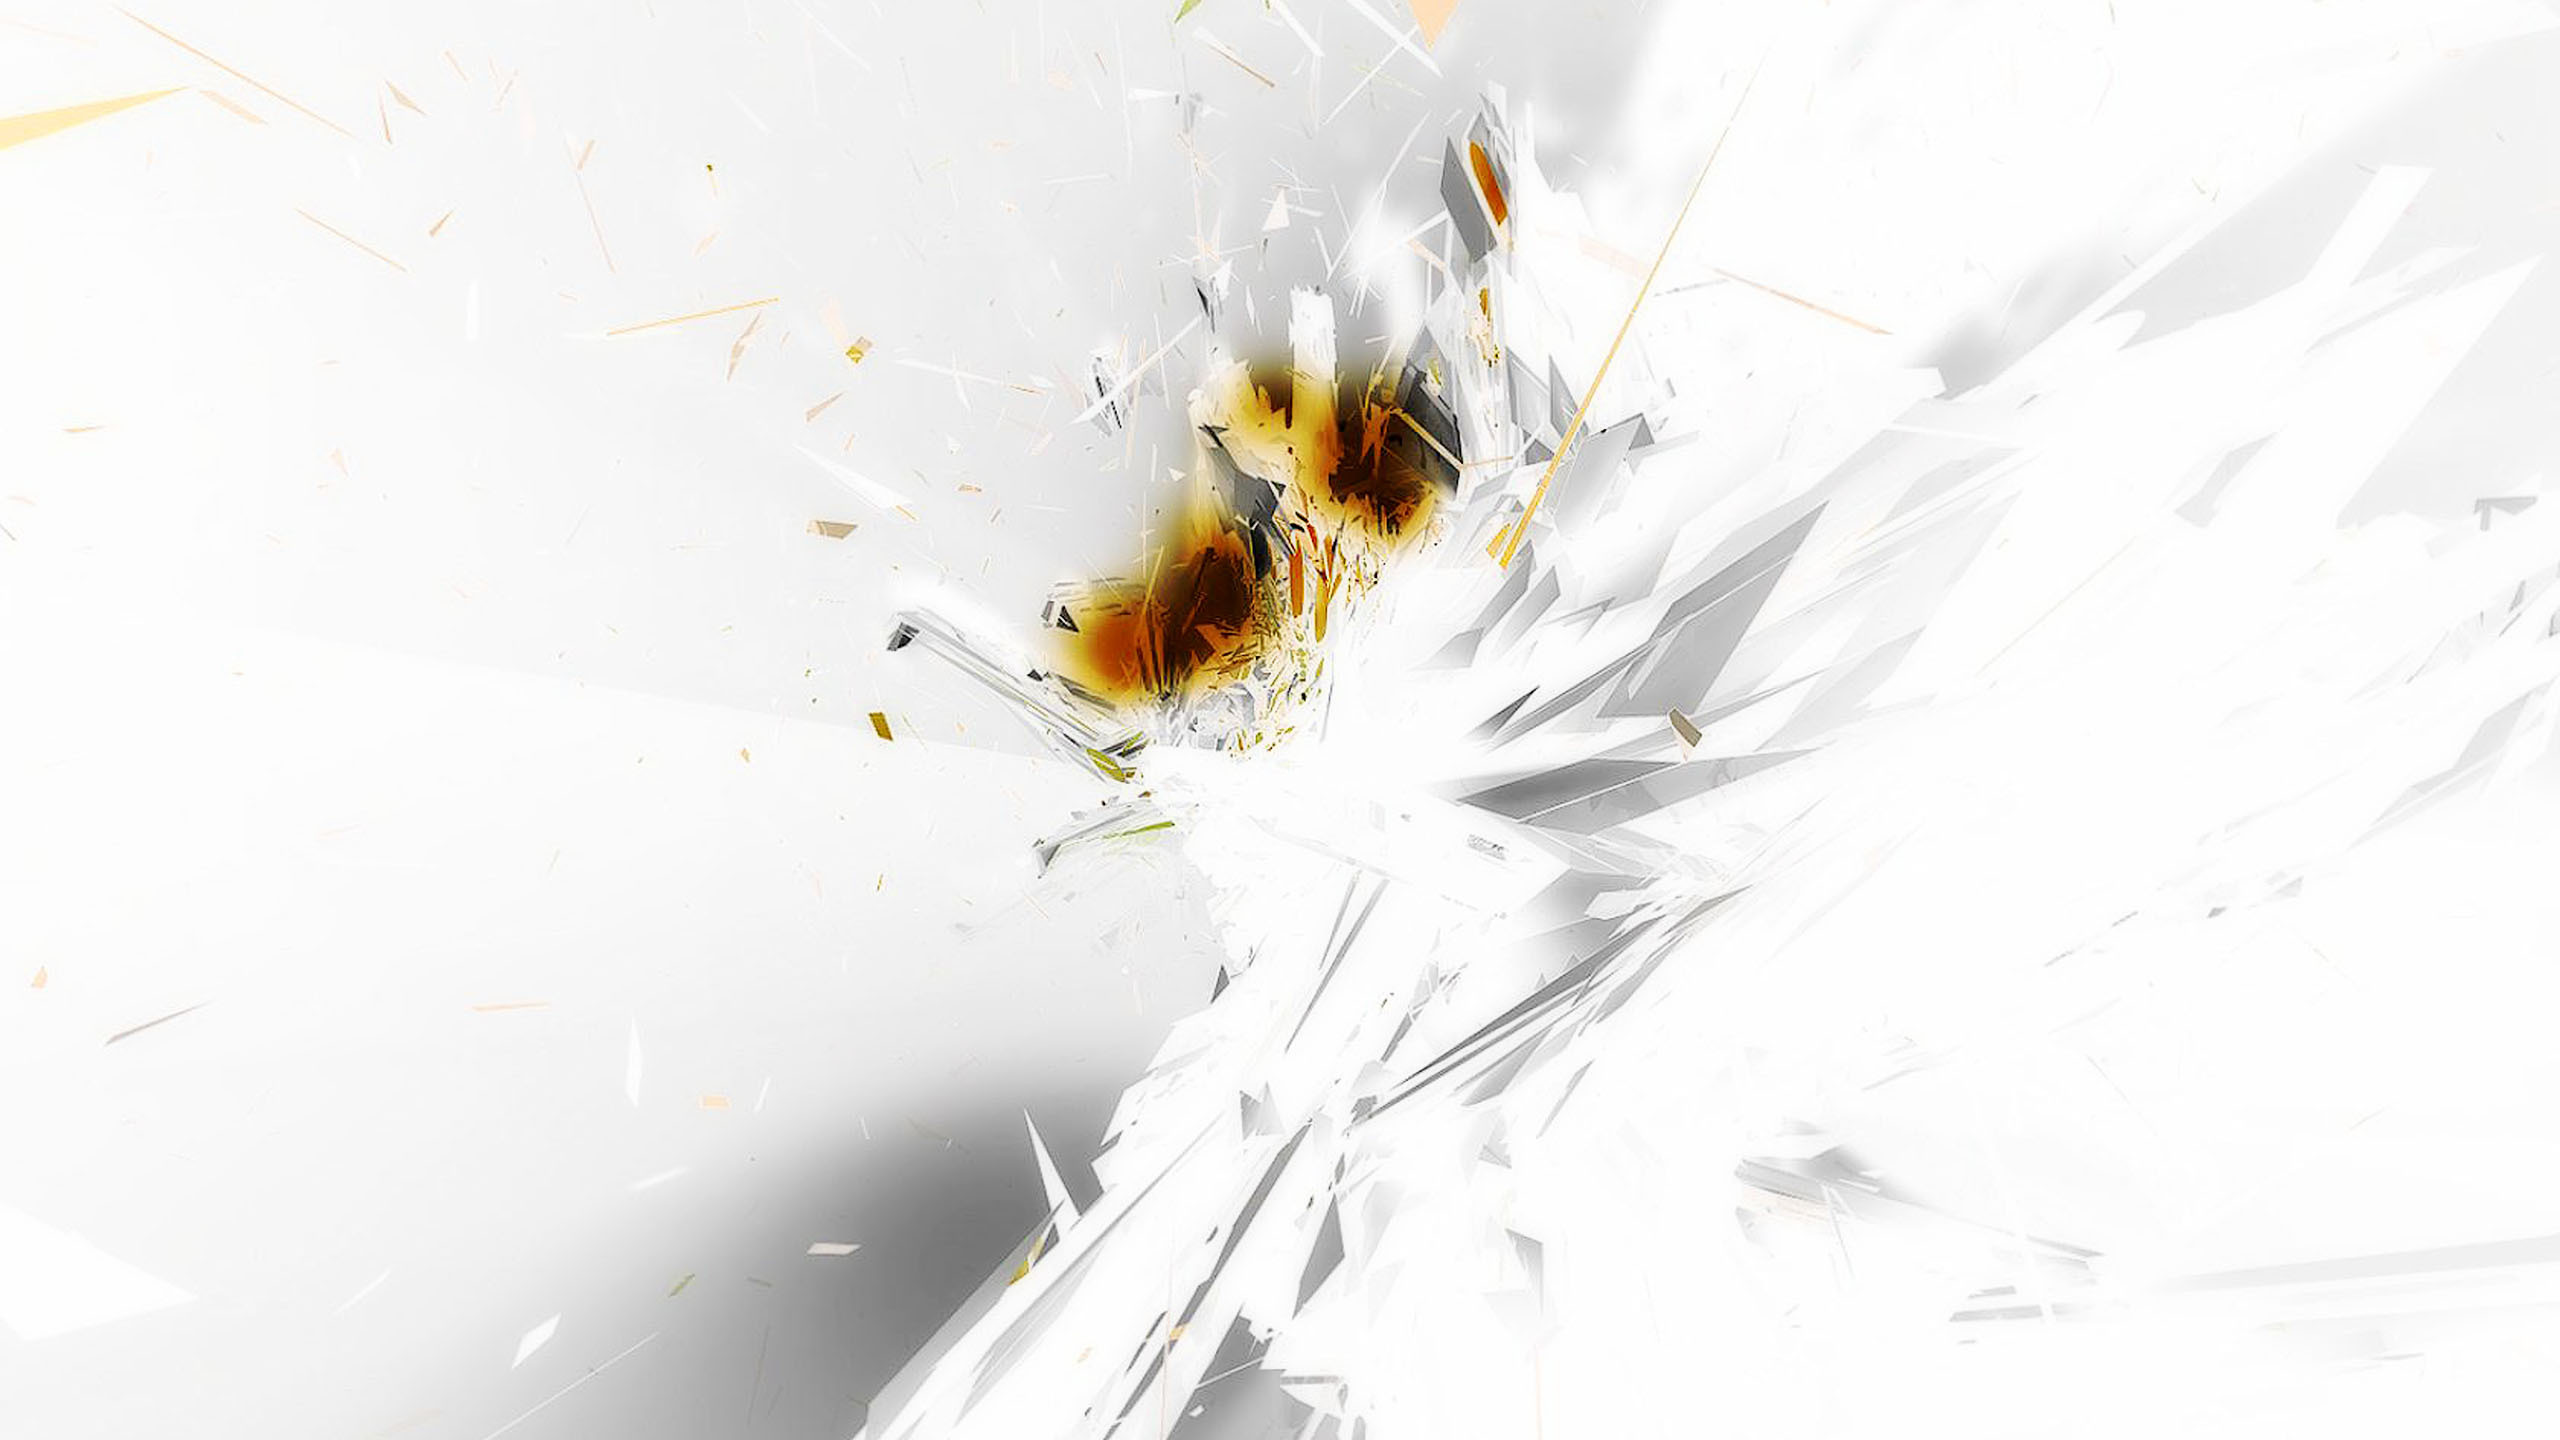 White abstract wallpapers hd - White abstract background hd ...